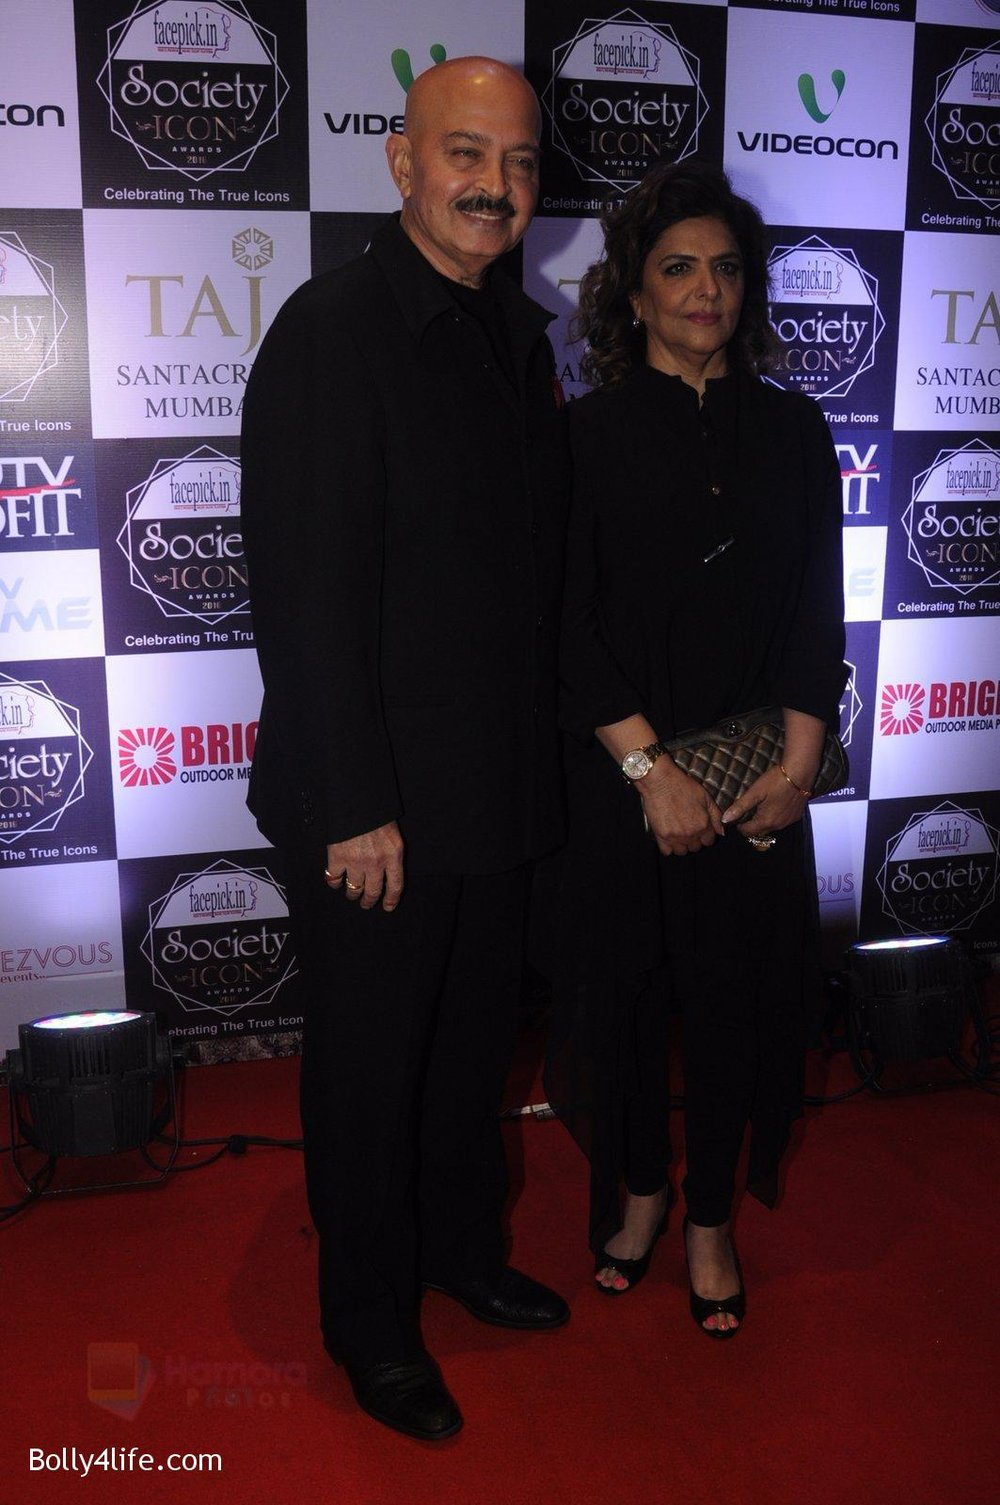 Rakesh-Roshan-at-Society-Icon-Awards-on-2nd-Oct-2016-51.jpg